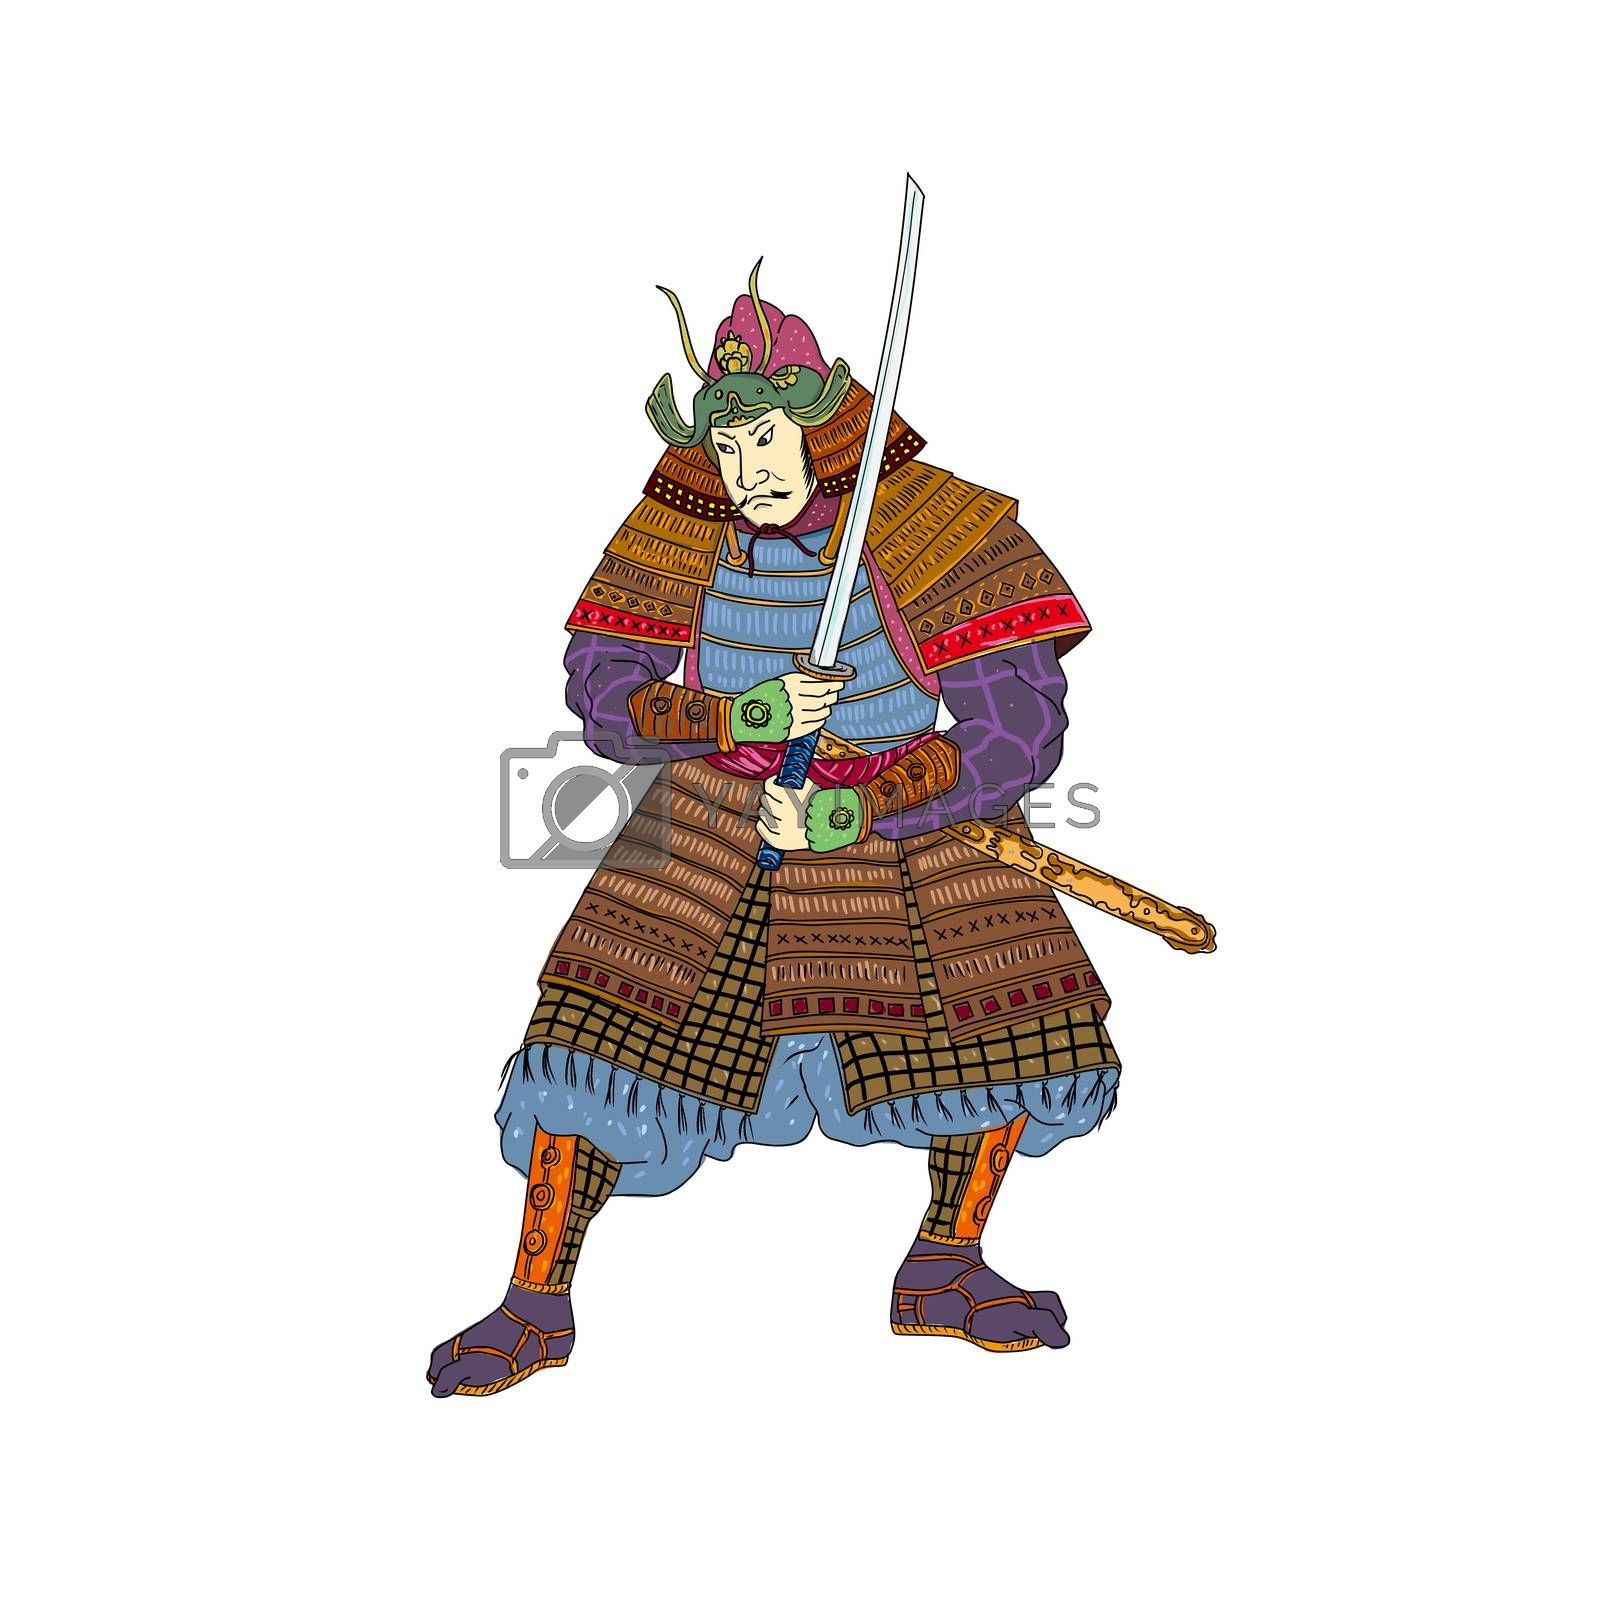 Vintage Woodblock style illustration of a Japanese samurai warrior wearing kabuto helmet with katana sword in fighting stance on isolated background.